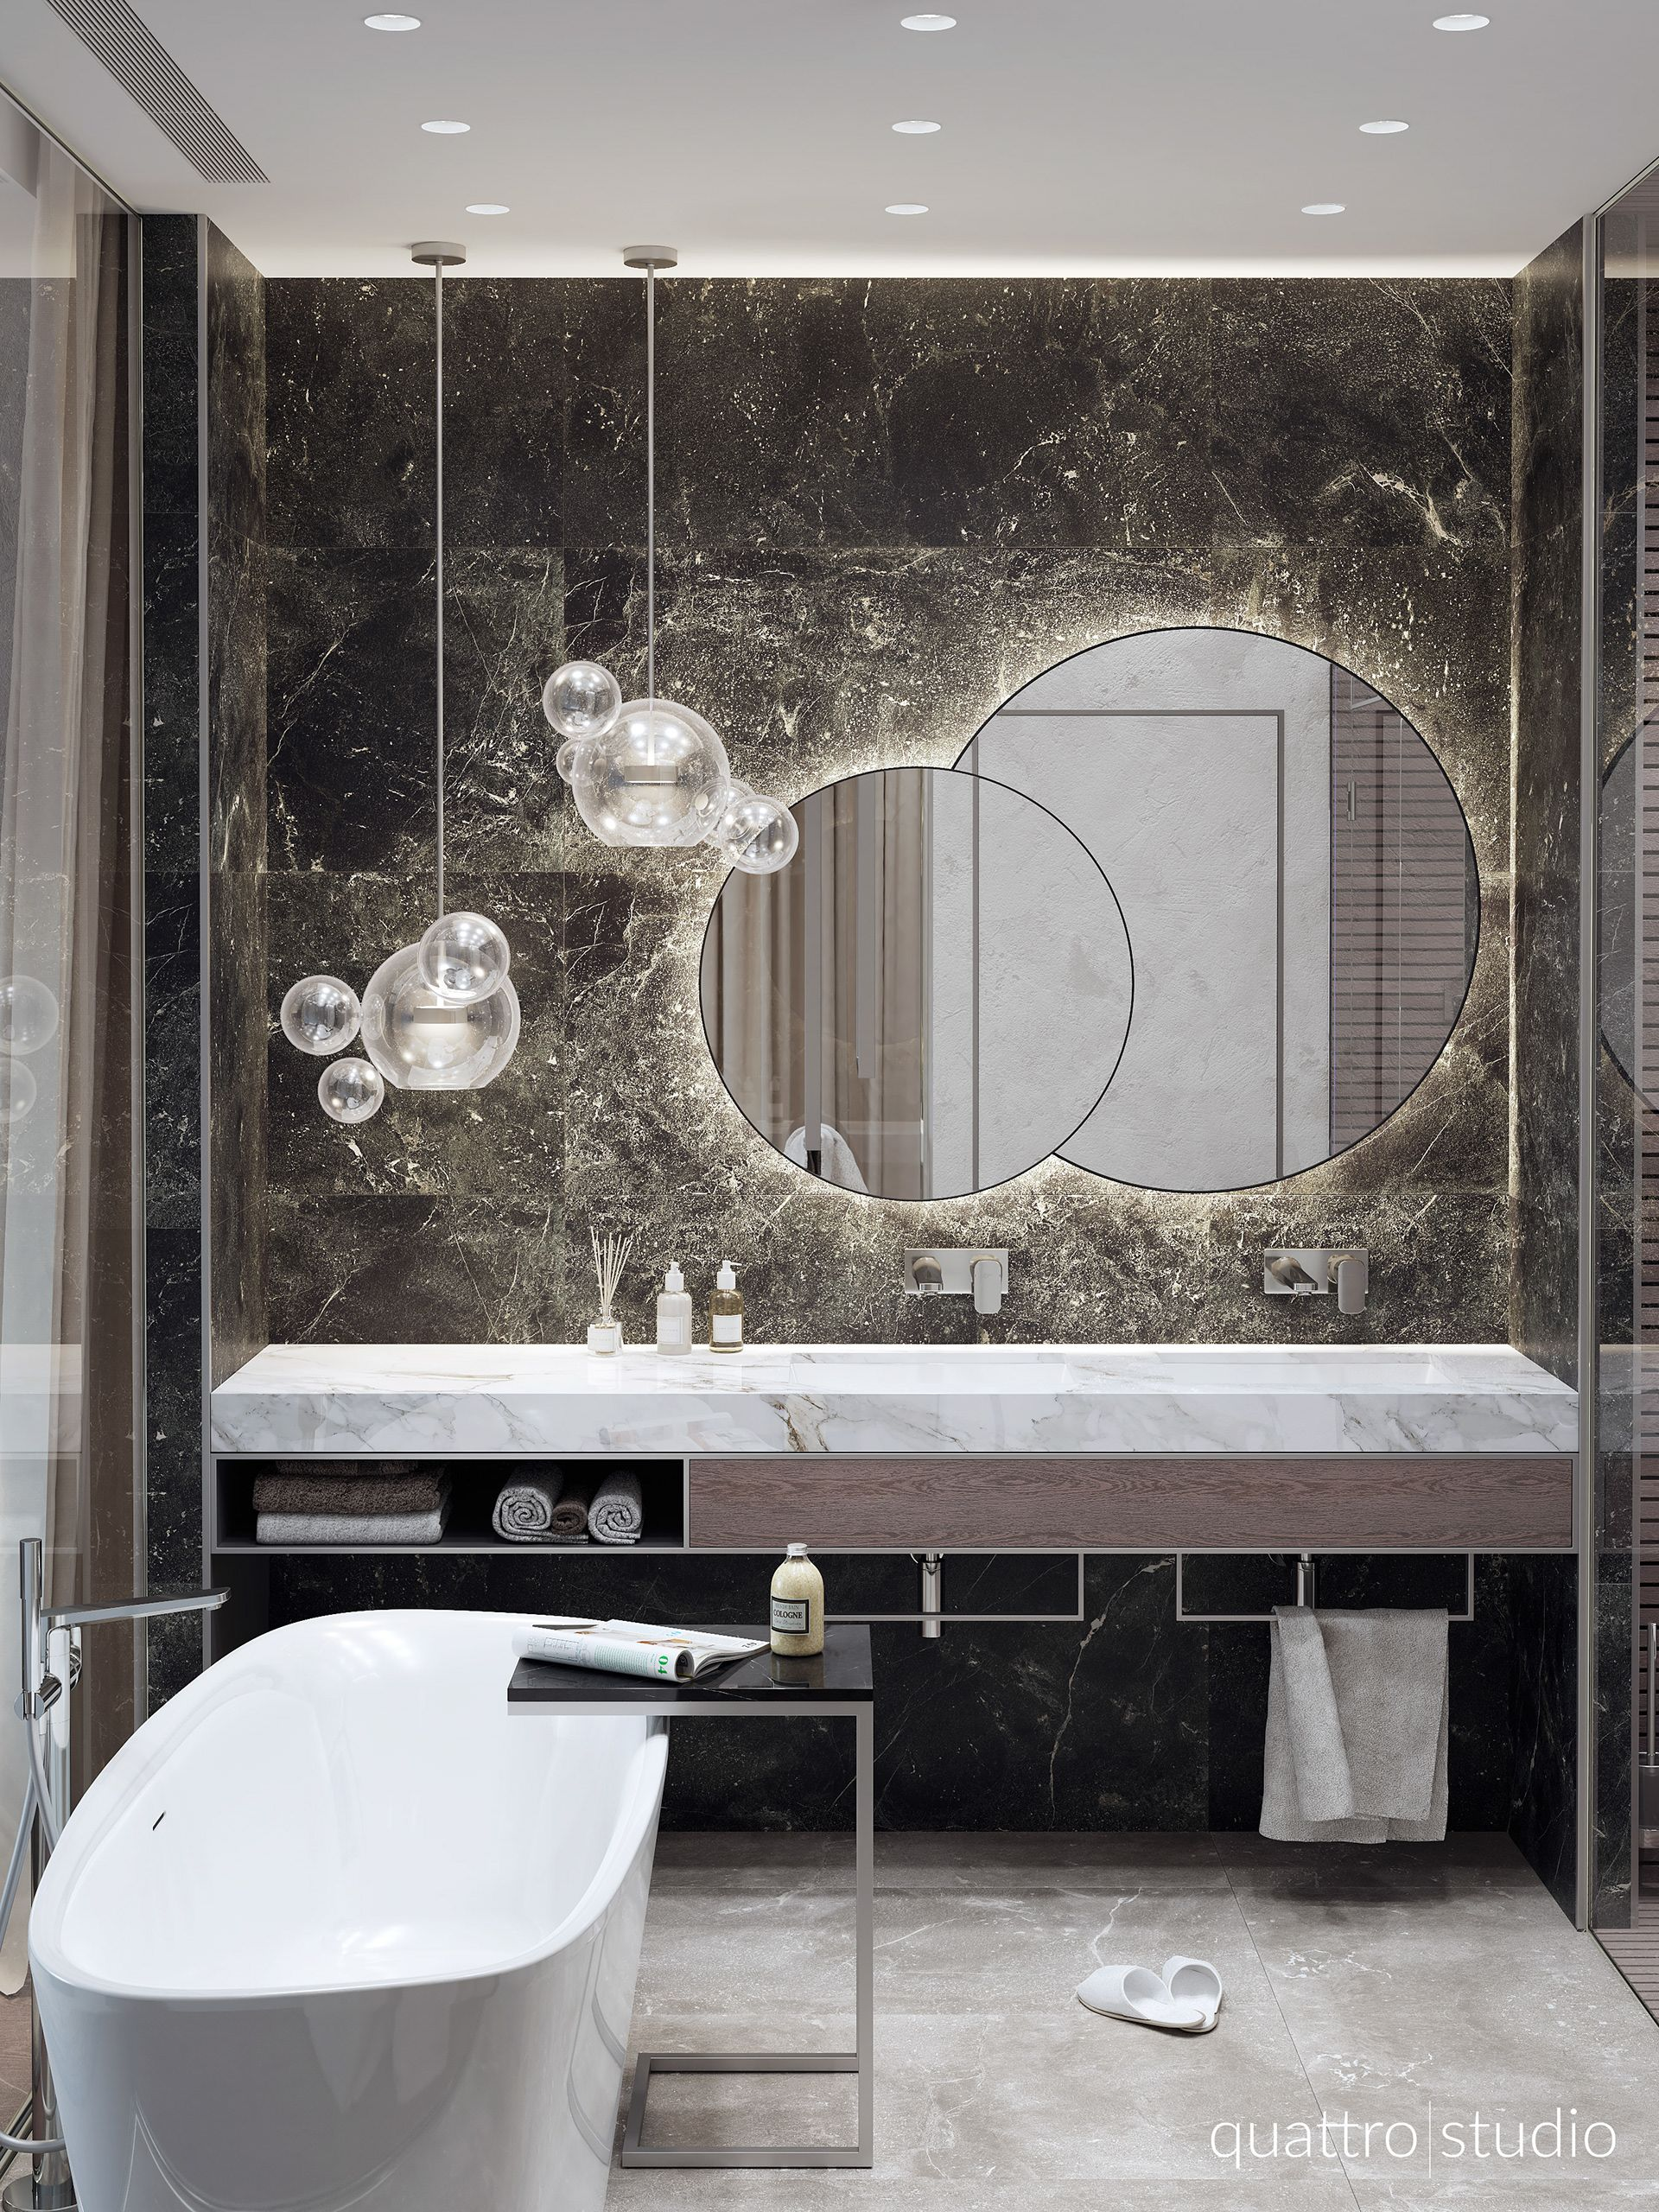 Contrast I Love This Room I Think Its Different And Has Its Own Style Love The Darker Wall An Modern Bathroom Mirrors Elegant Bathroom Modern Bathroom Design